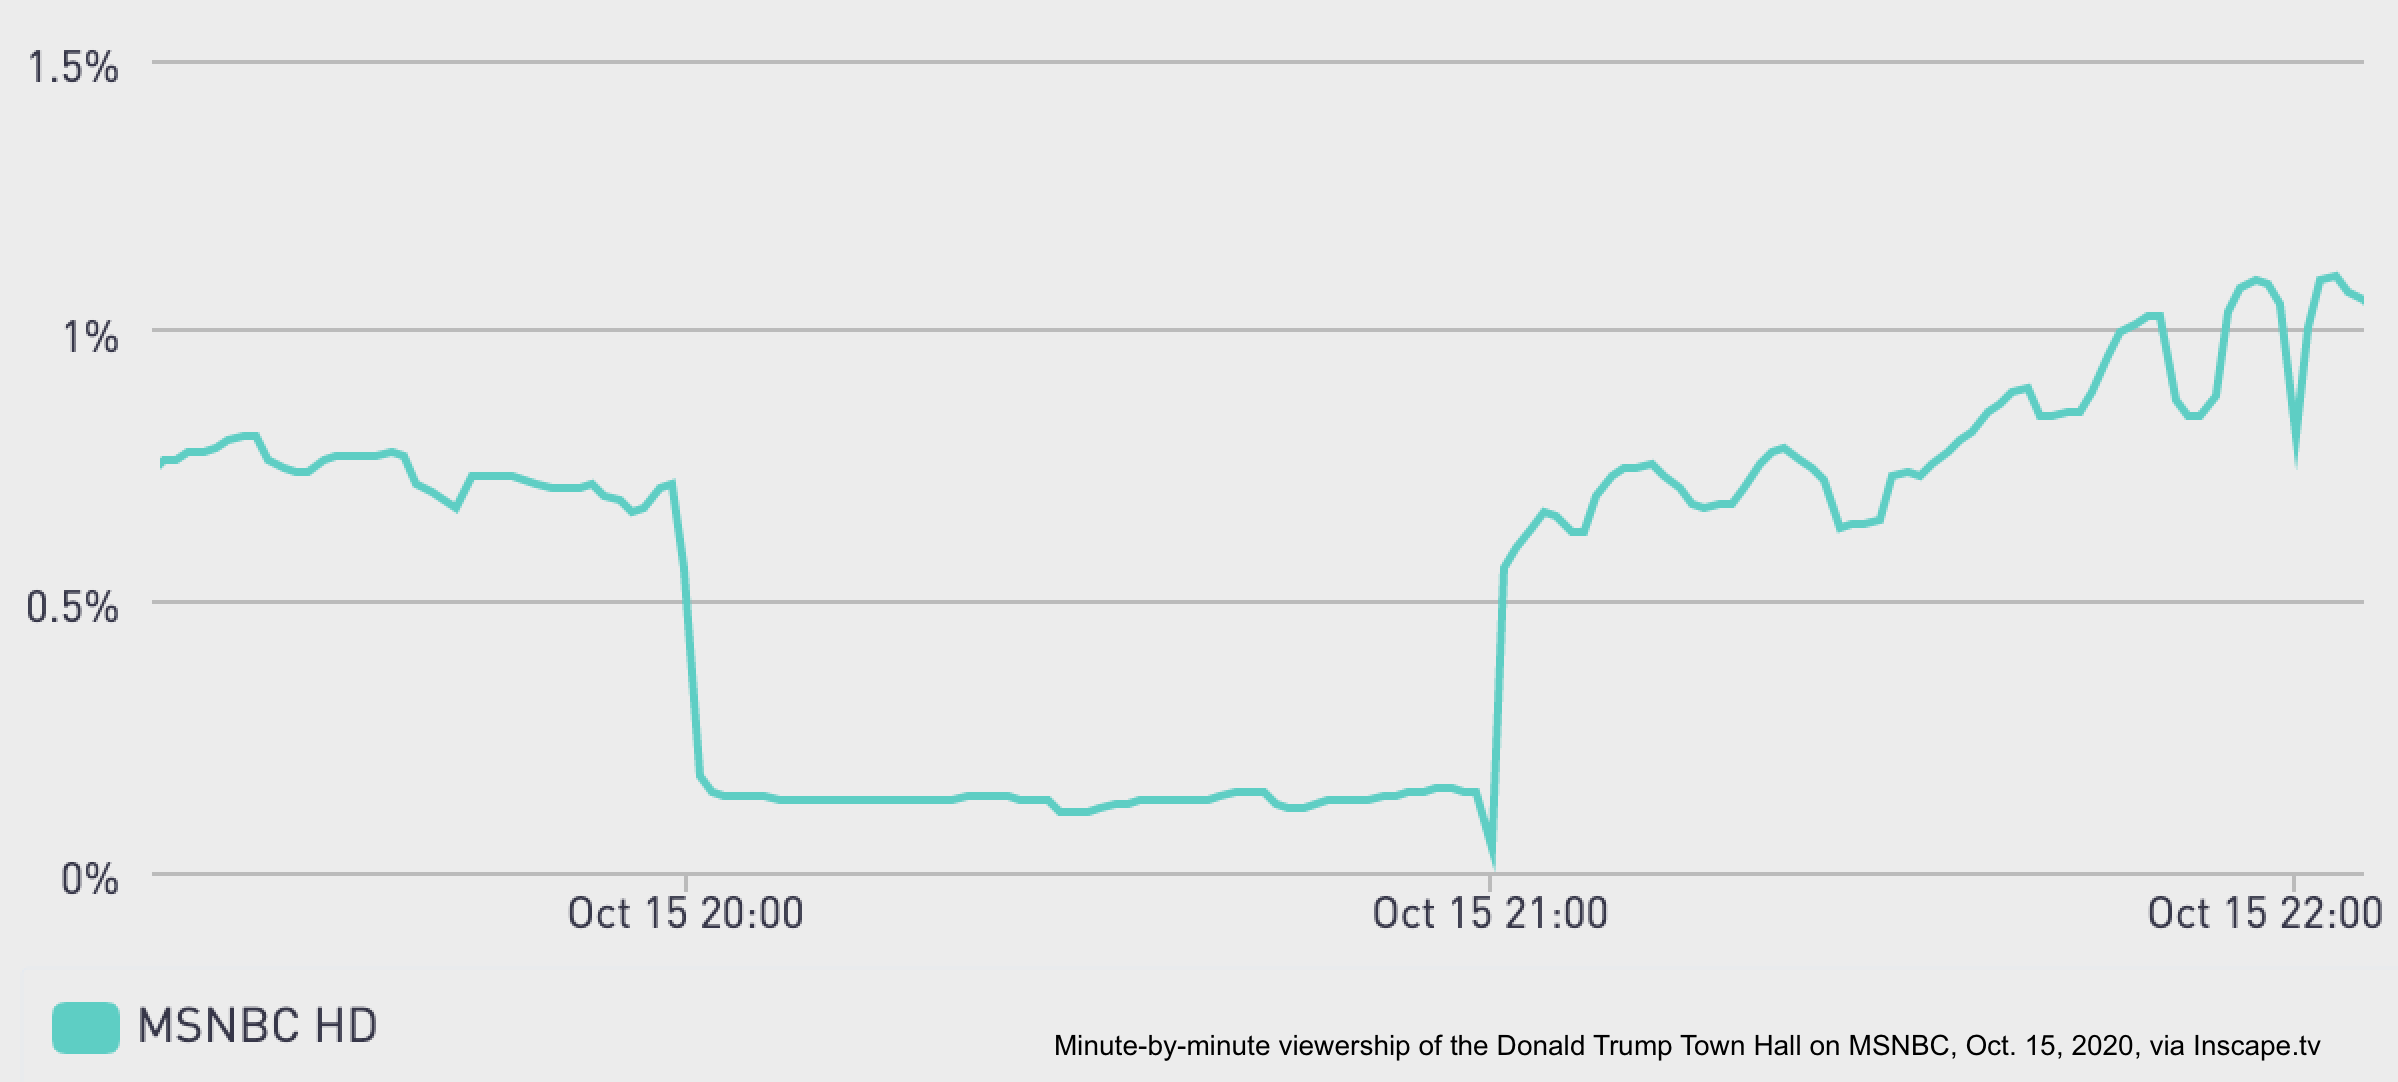 Inscape chart of MSNBC viewership during President Trump's town hall that shows viewership dropping off dramatically.